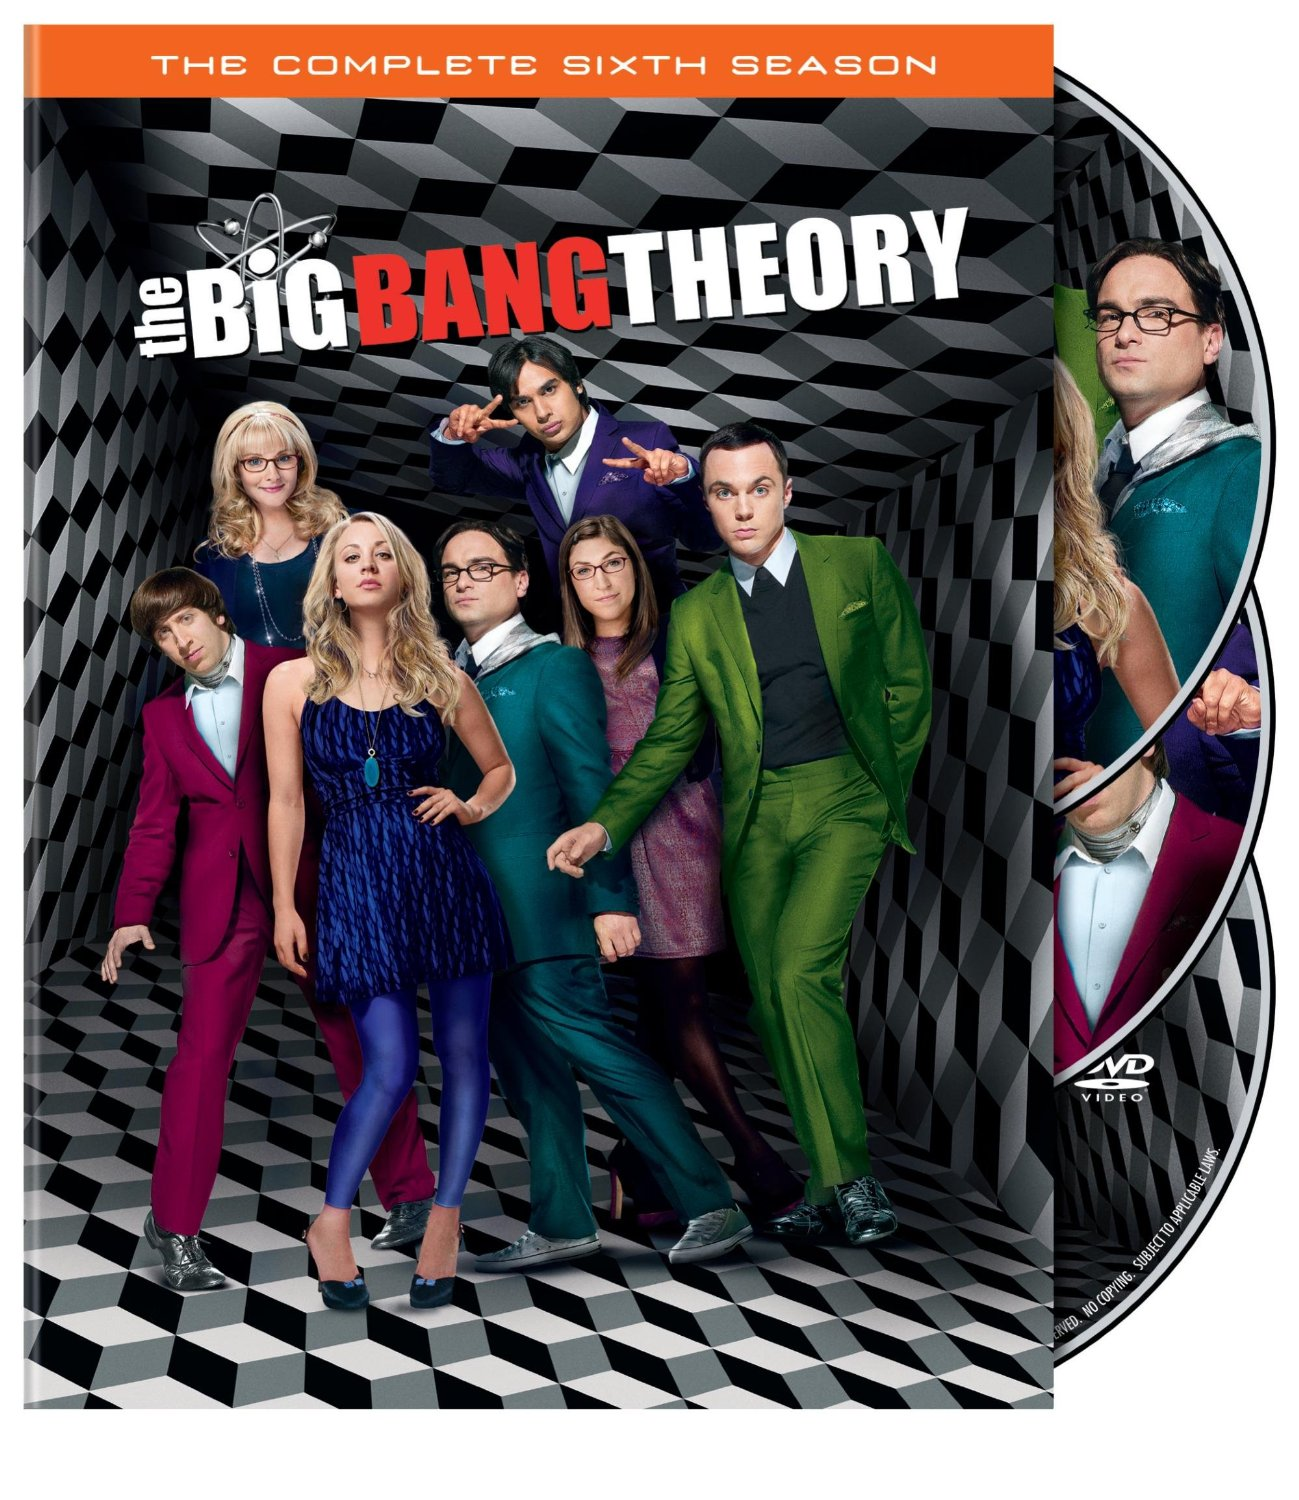 fringe big bang theory season 6 dvdKPonTV on Big Bang Theory Complete Sixth Season on DVDBluRay dTyxFH8f